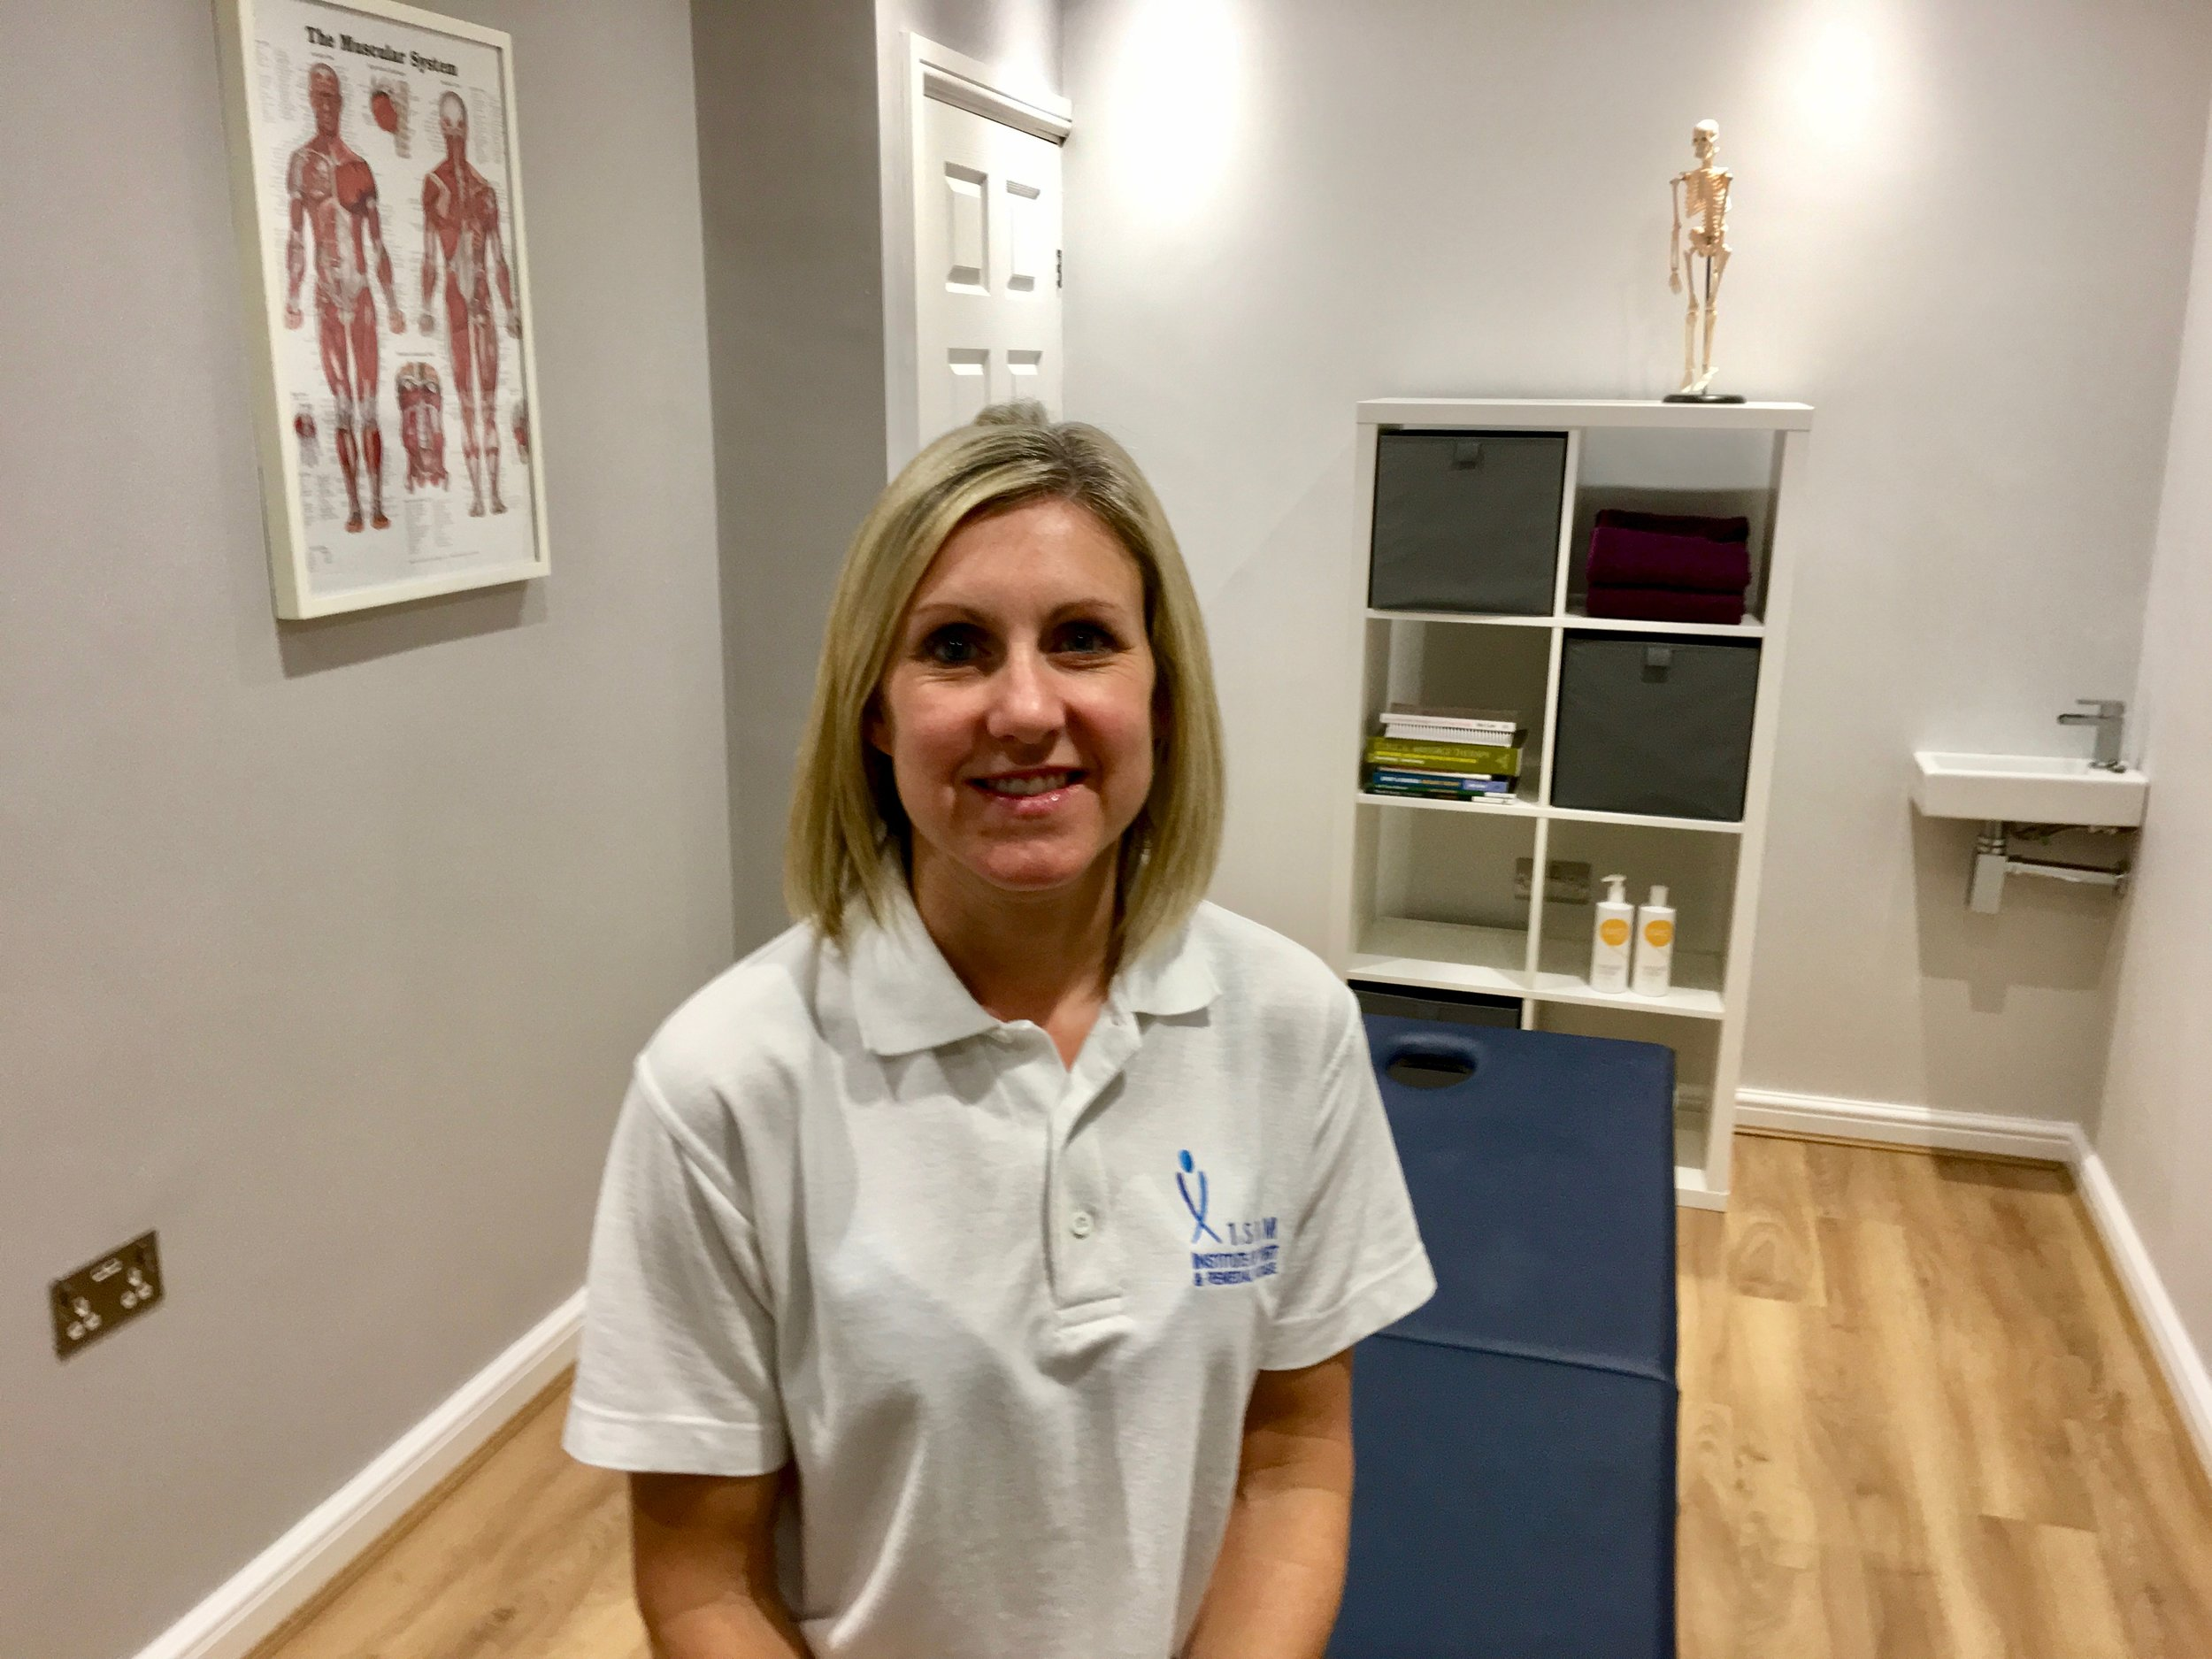 About me - I qualified in 2017 from the London School of Sports Massage, I am passionate about helping people achieve their goals and love helping with training for a sporting event or speeding up recovery of an injury